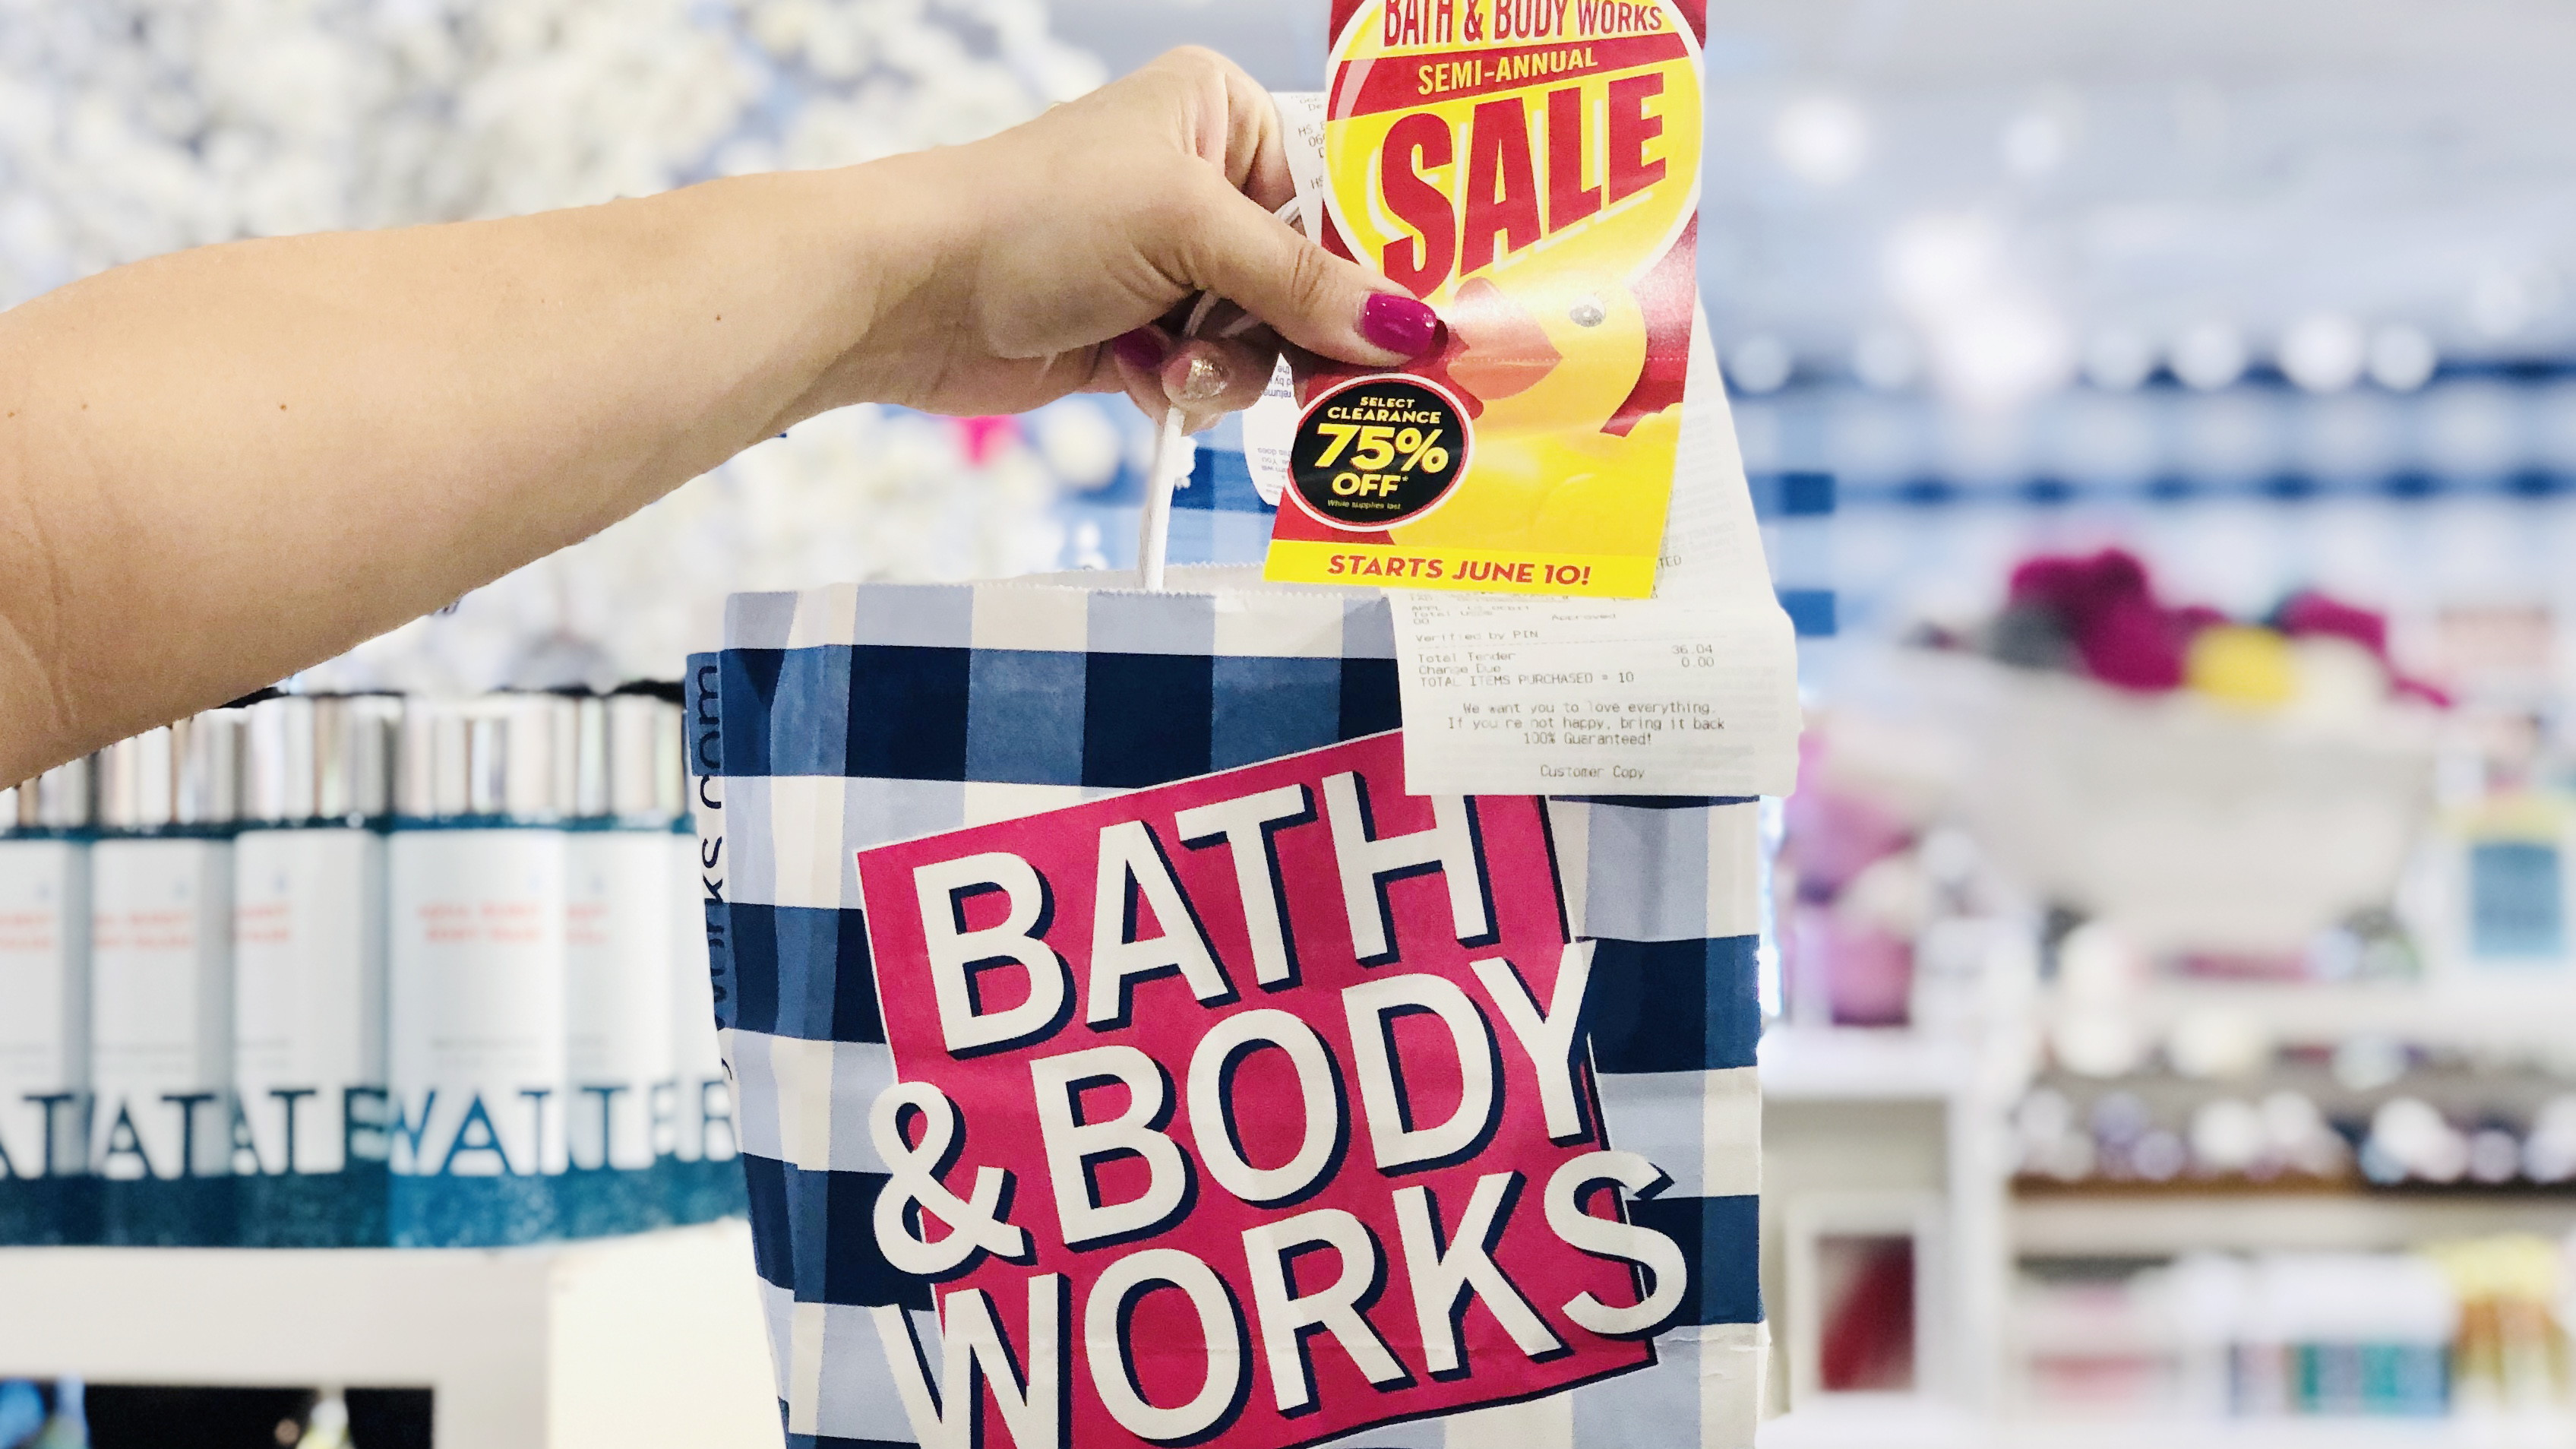 13 Best Ways to Save During Bath & Body Works' Semi-Annual